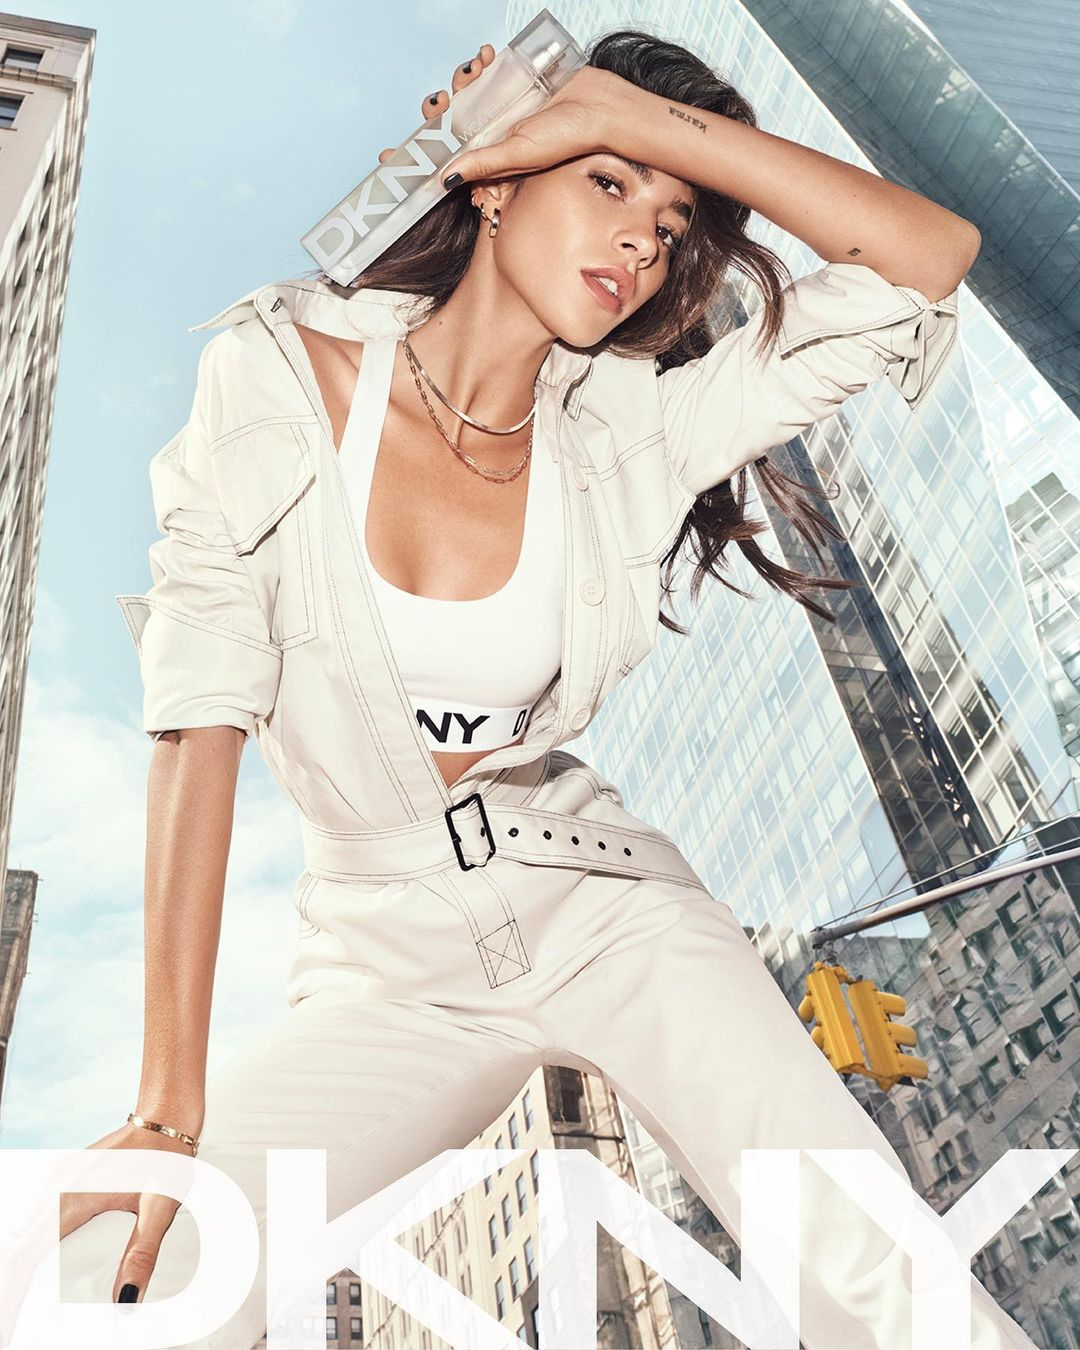 Gold Jewelry in DKNY Ad